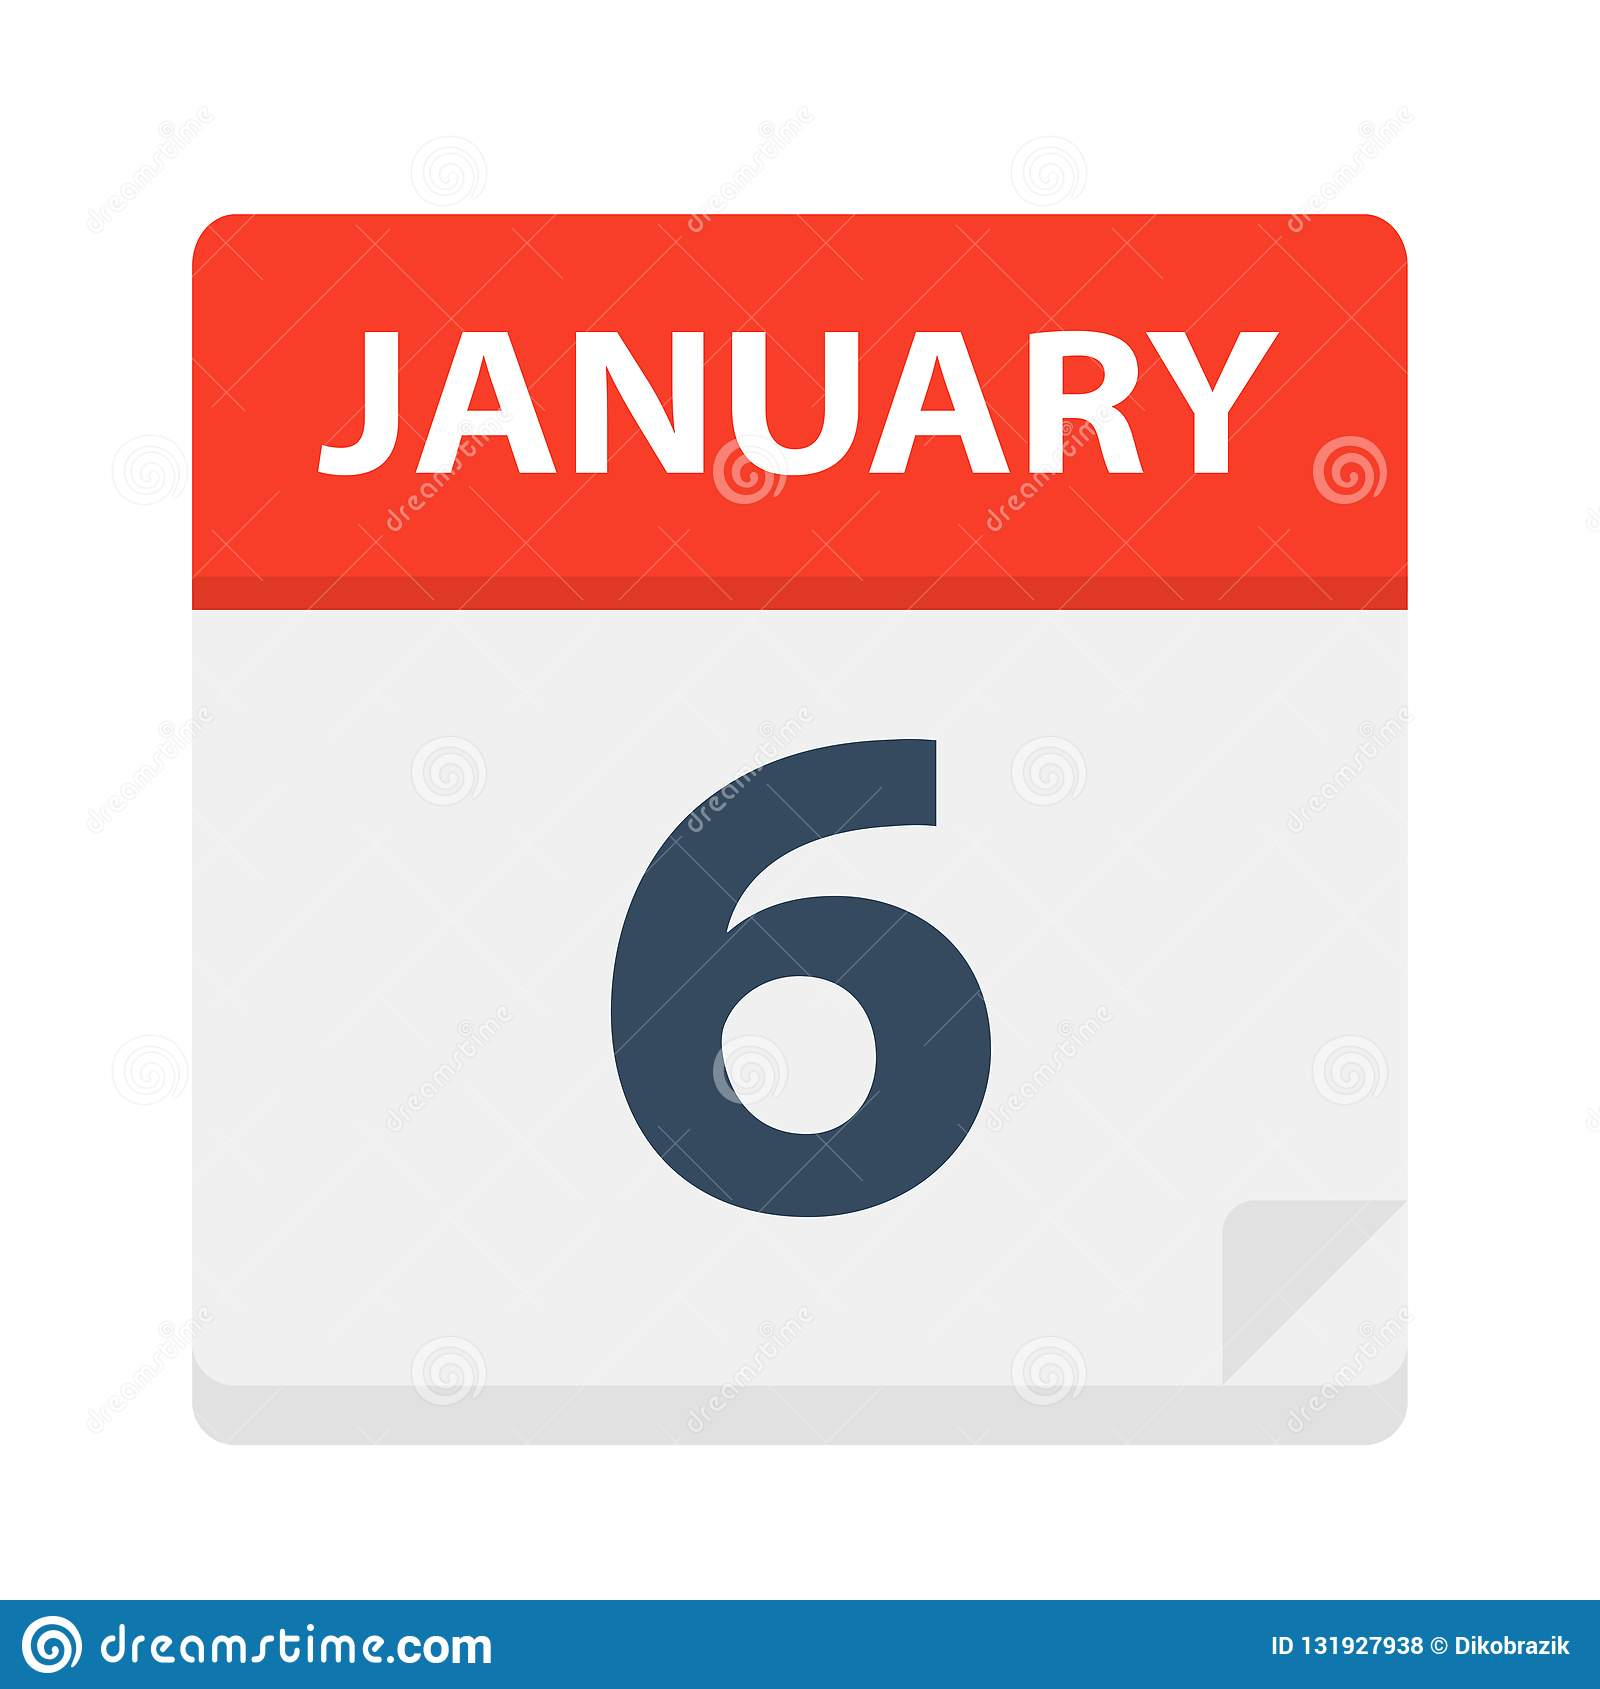 January 6 - Calendar Icon Stock Vector. Illustration Of 2020